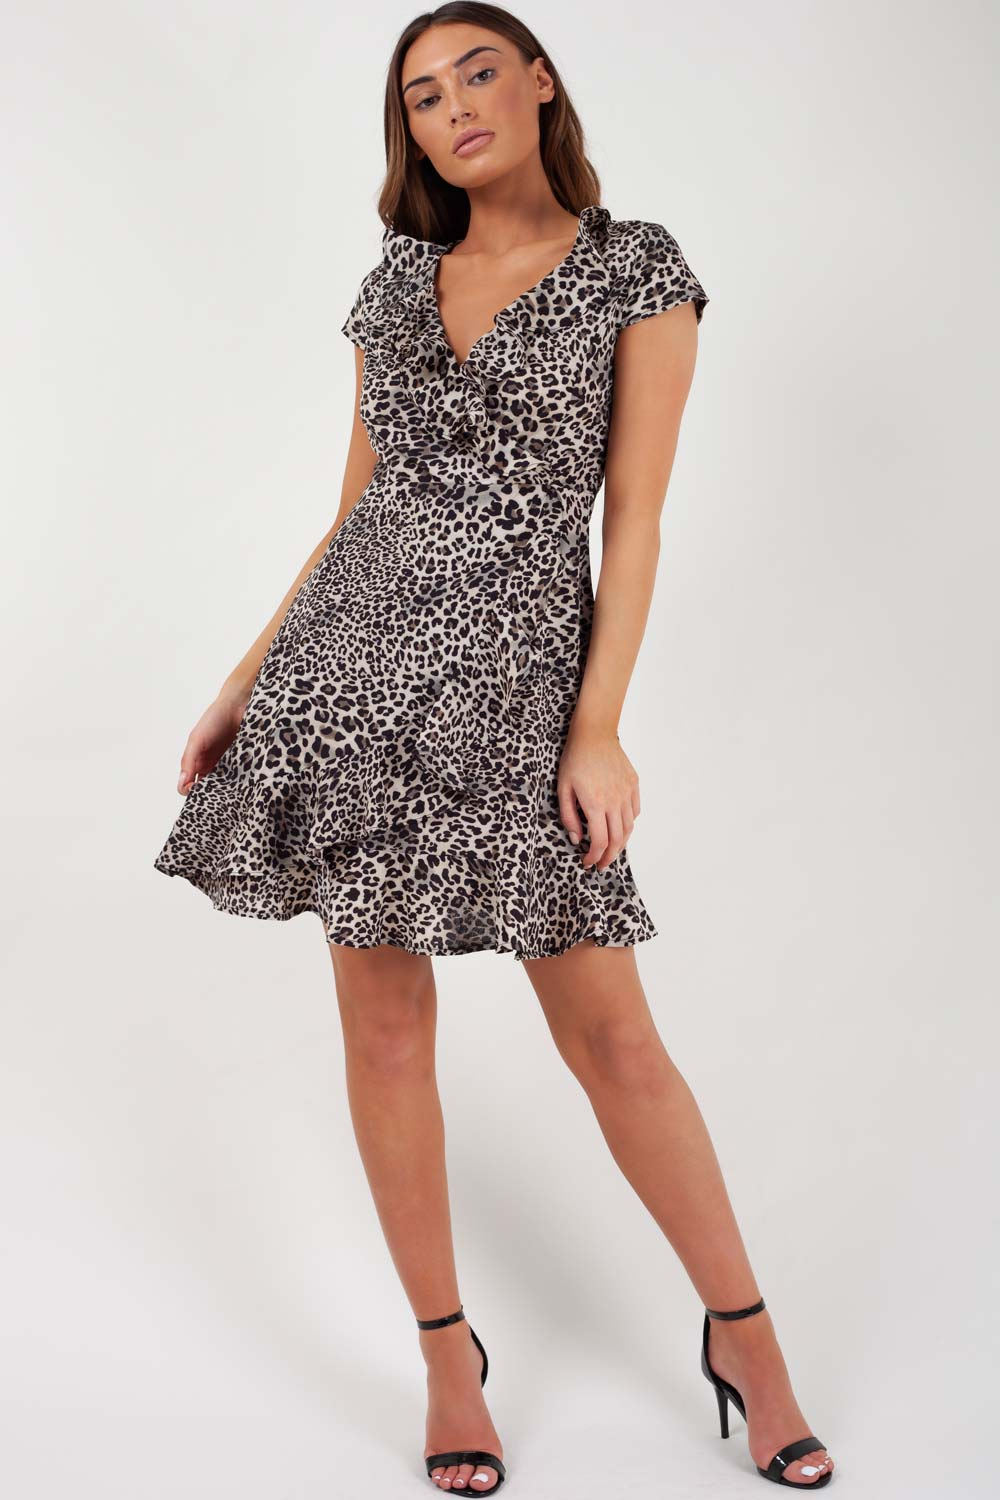 leopard wrap dress uk